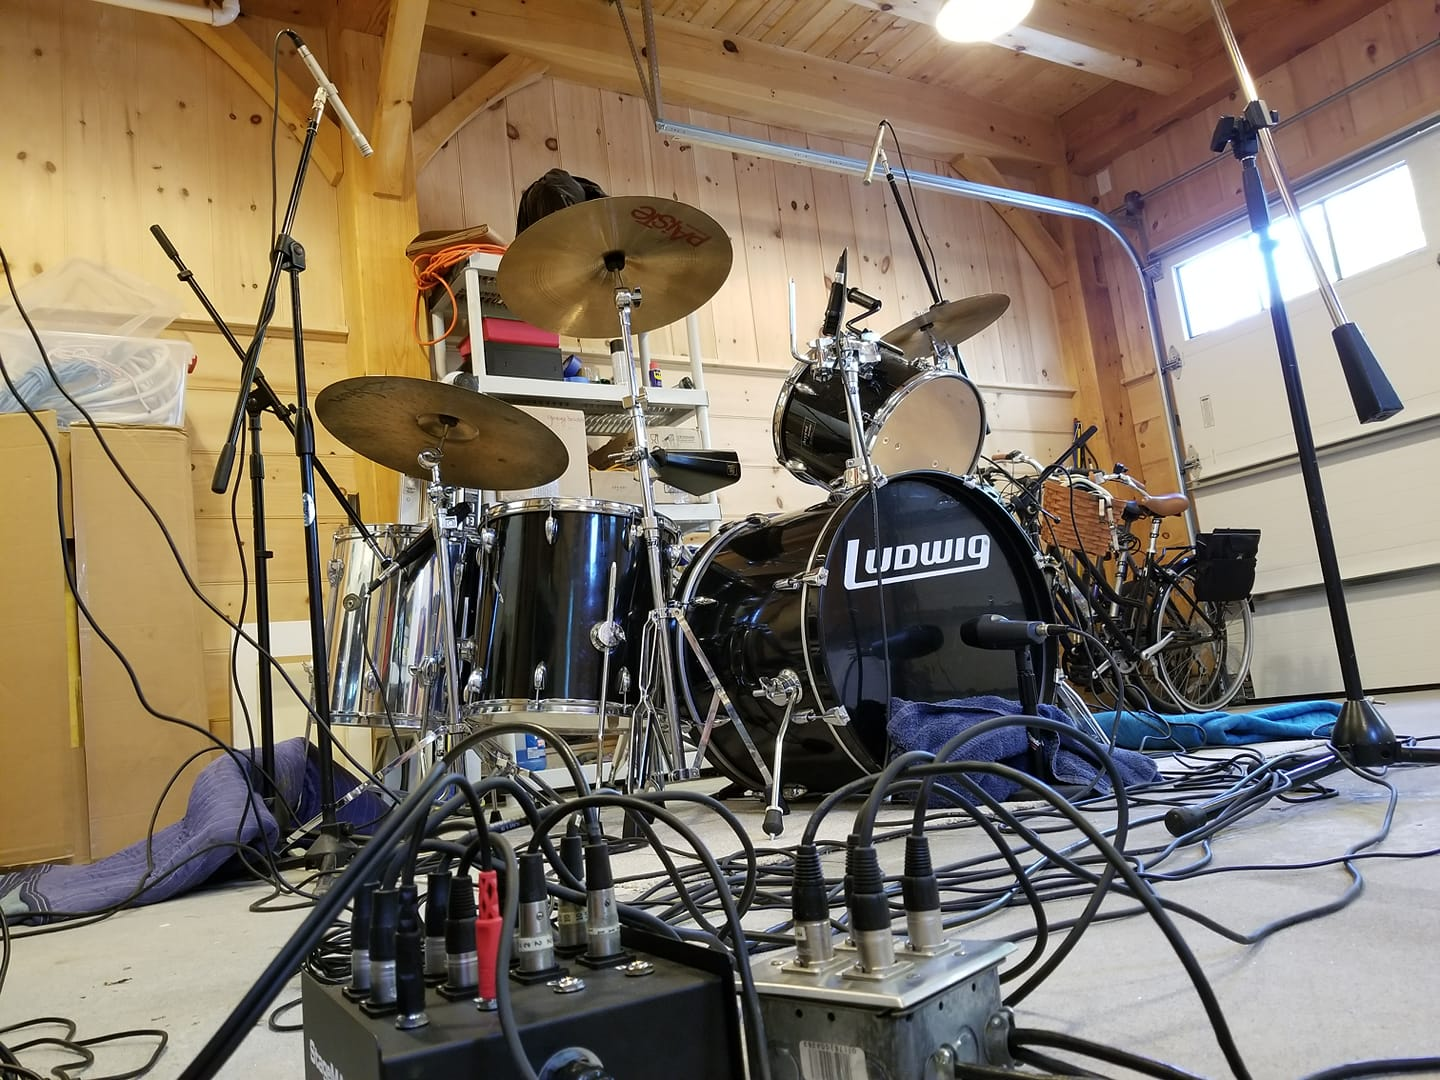 drum kit micd up in the garage